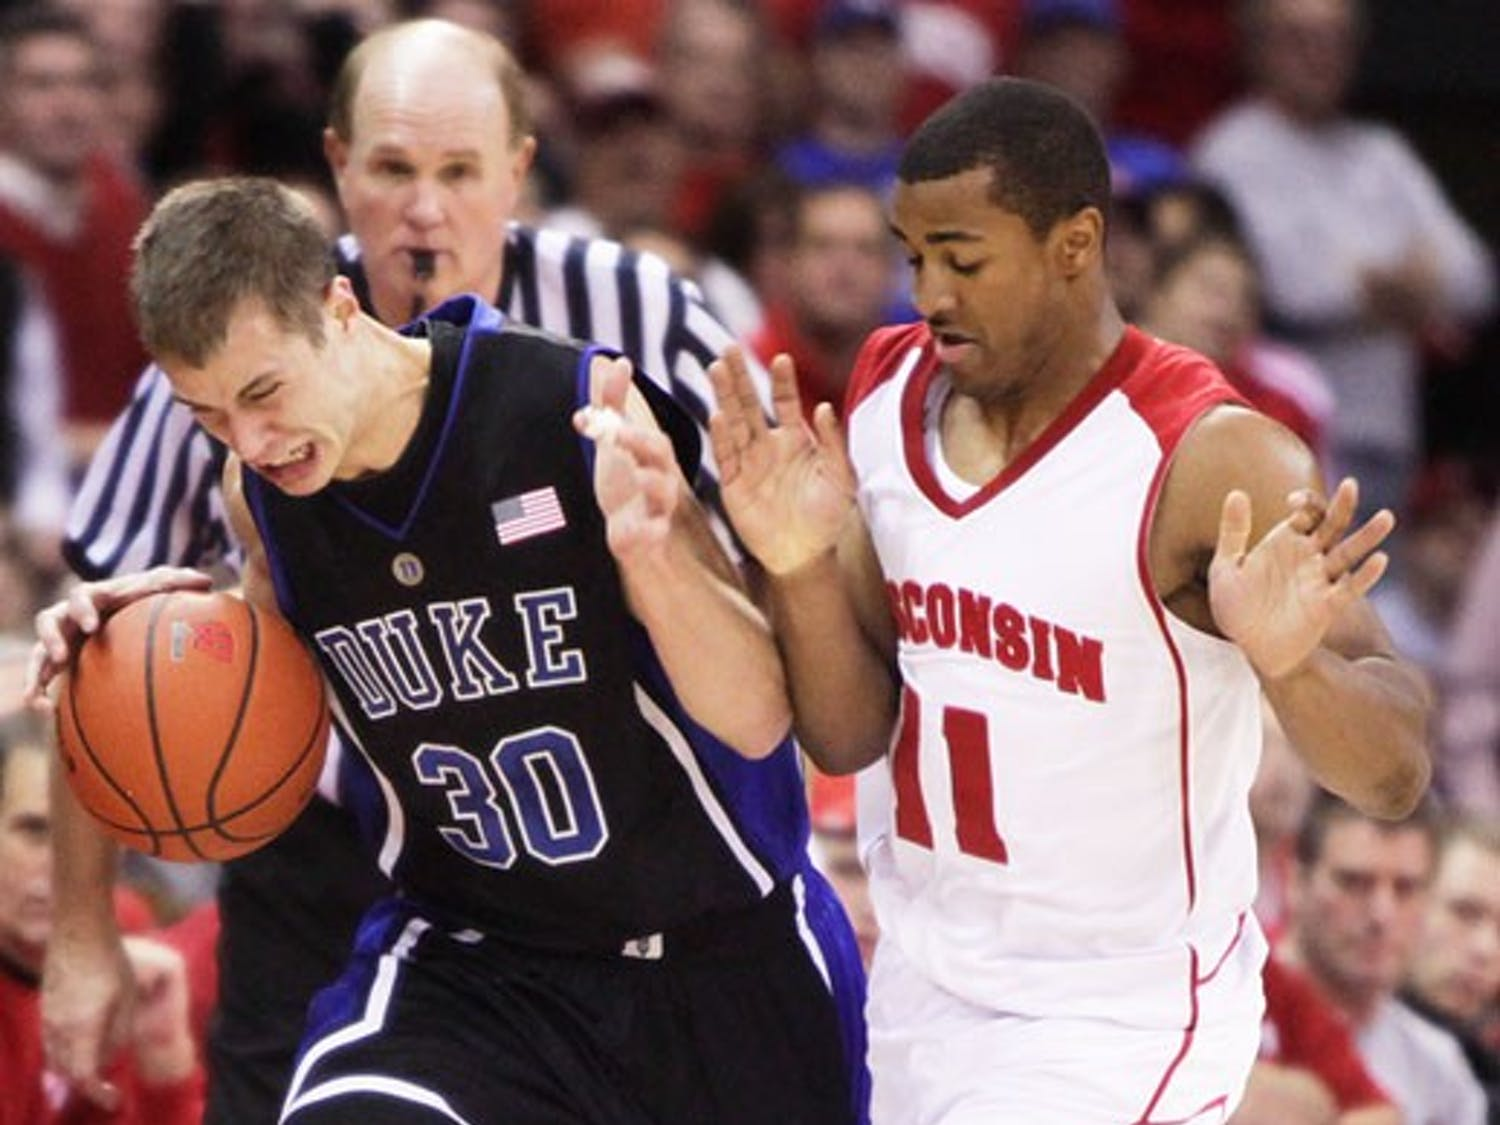 After marquee win, Badgers prepare for Tigers